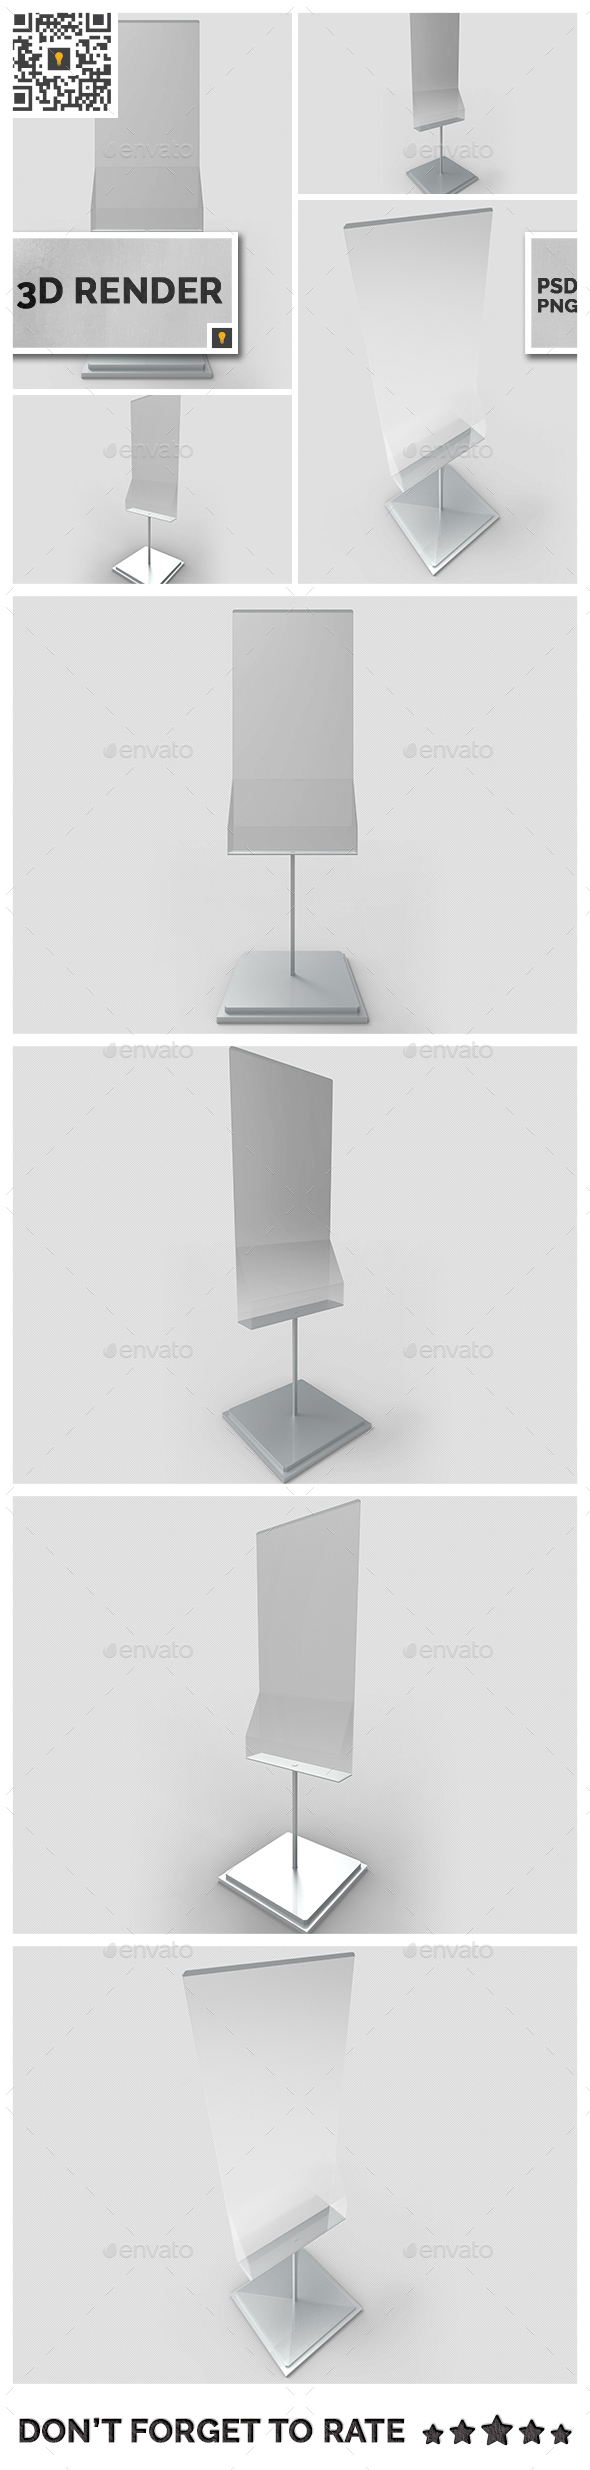 Poster Stand with Rack 3D Render - Objects 3D Renders